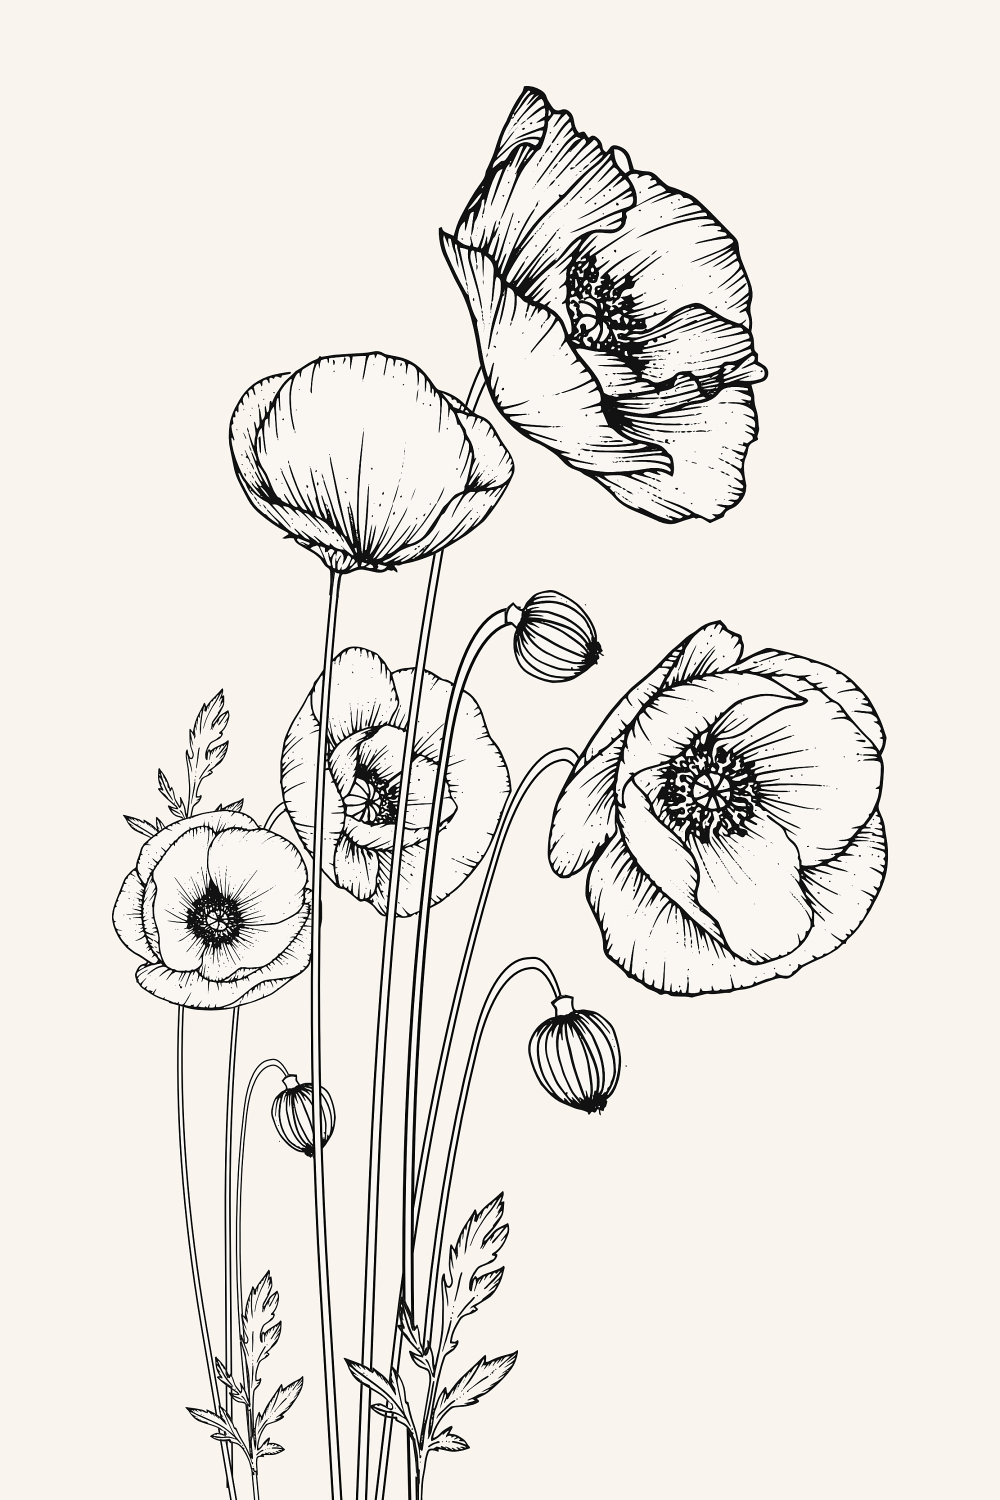 Poppy Flower Print Black White Drawing Nature Lover Wall Art Botanical Print California Nature Decor H Poppy Flower Drawing Flower Drawing Art Prints